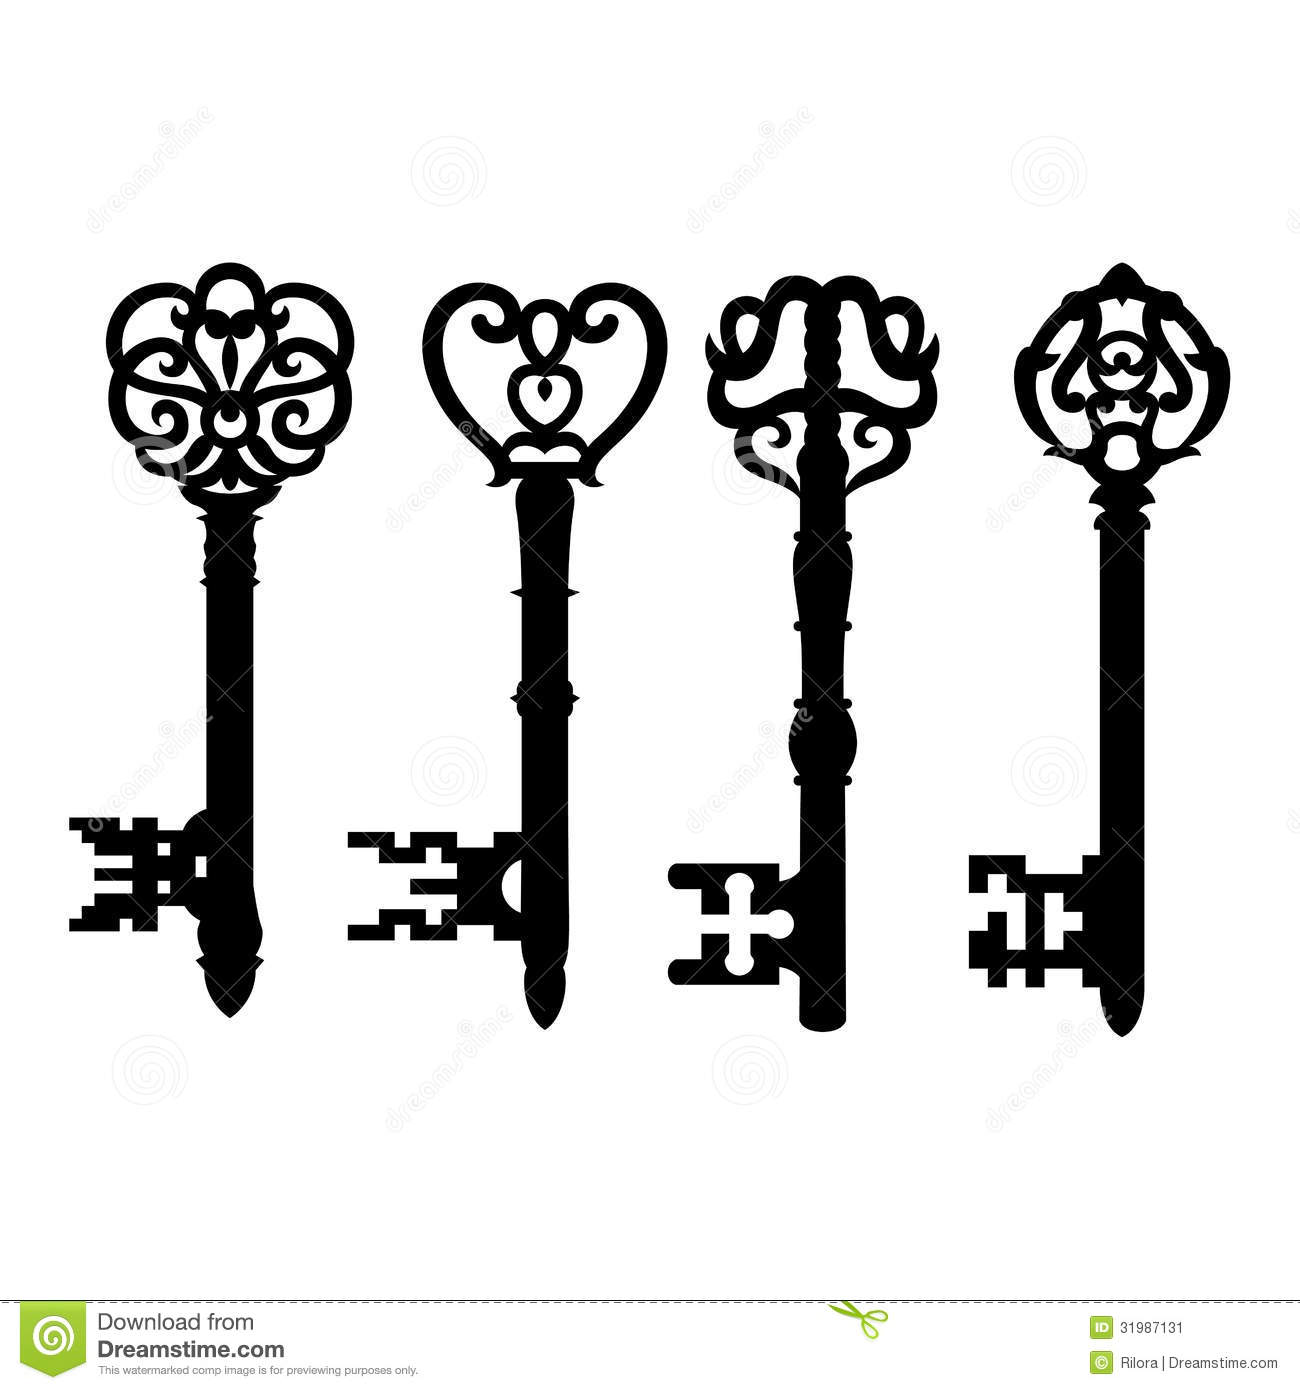 Vector Key Illustration: Old Key Collection Stock Vector. Image Of Collection